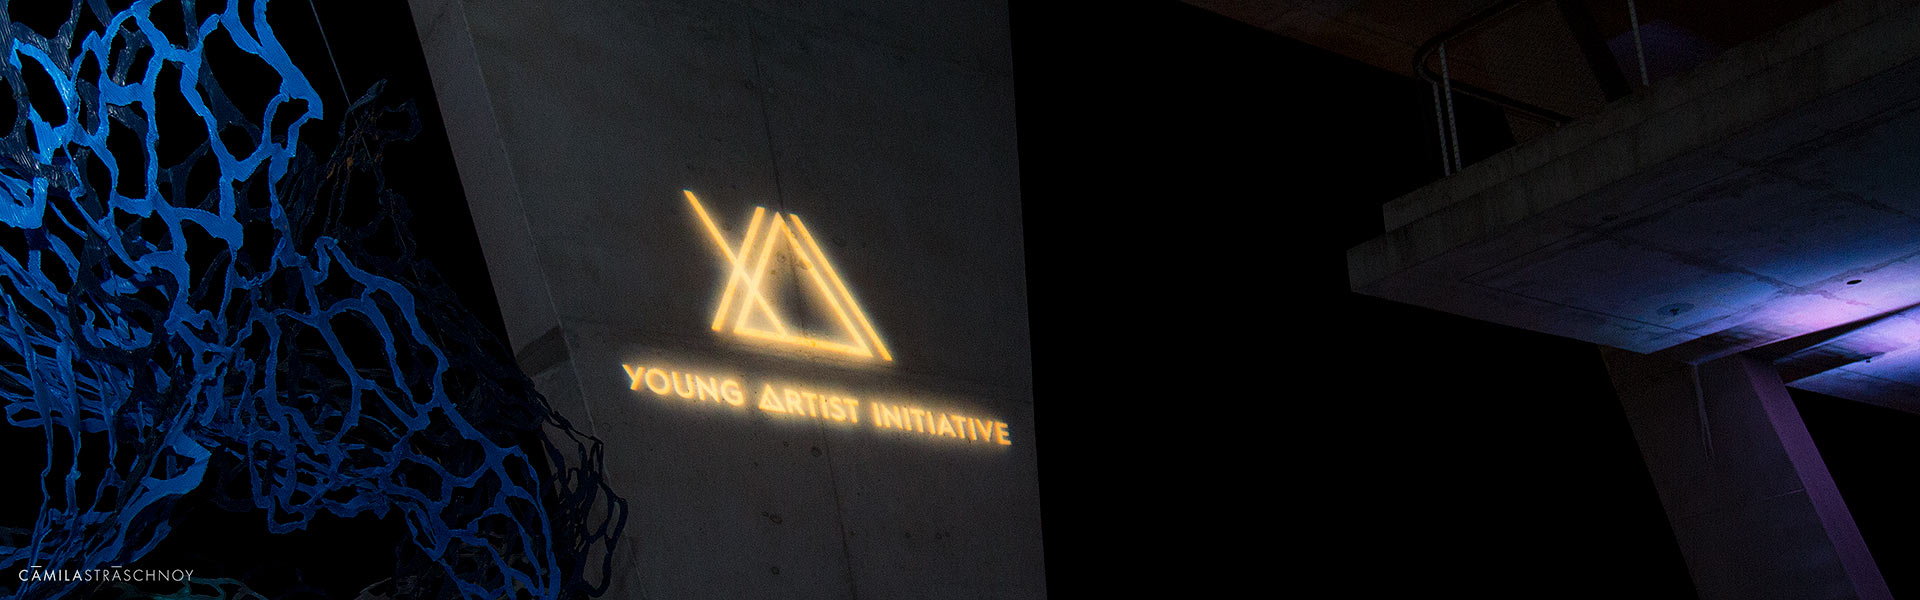 Young Artist Initiative in Miami Beach